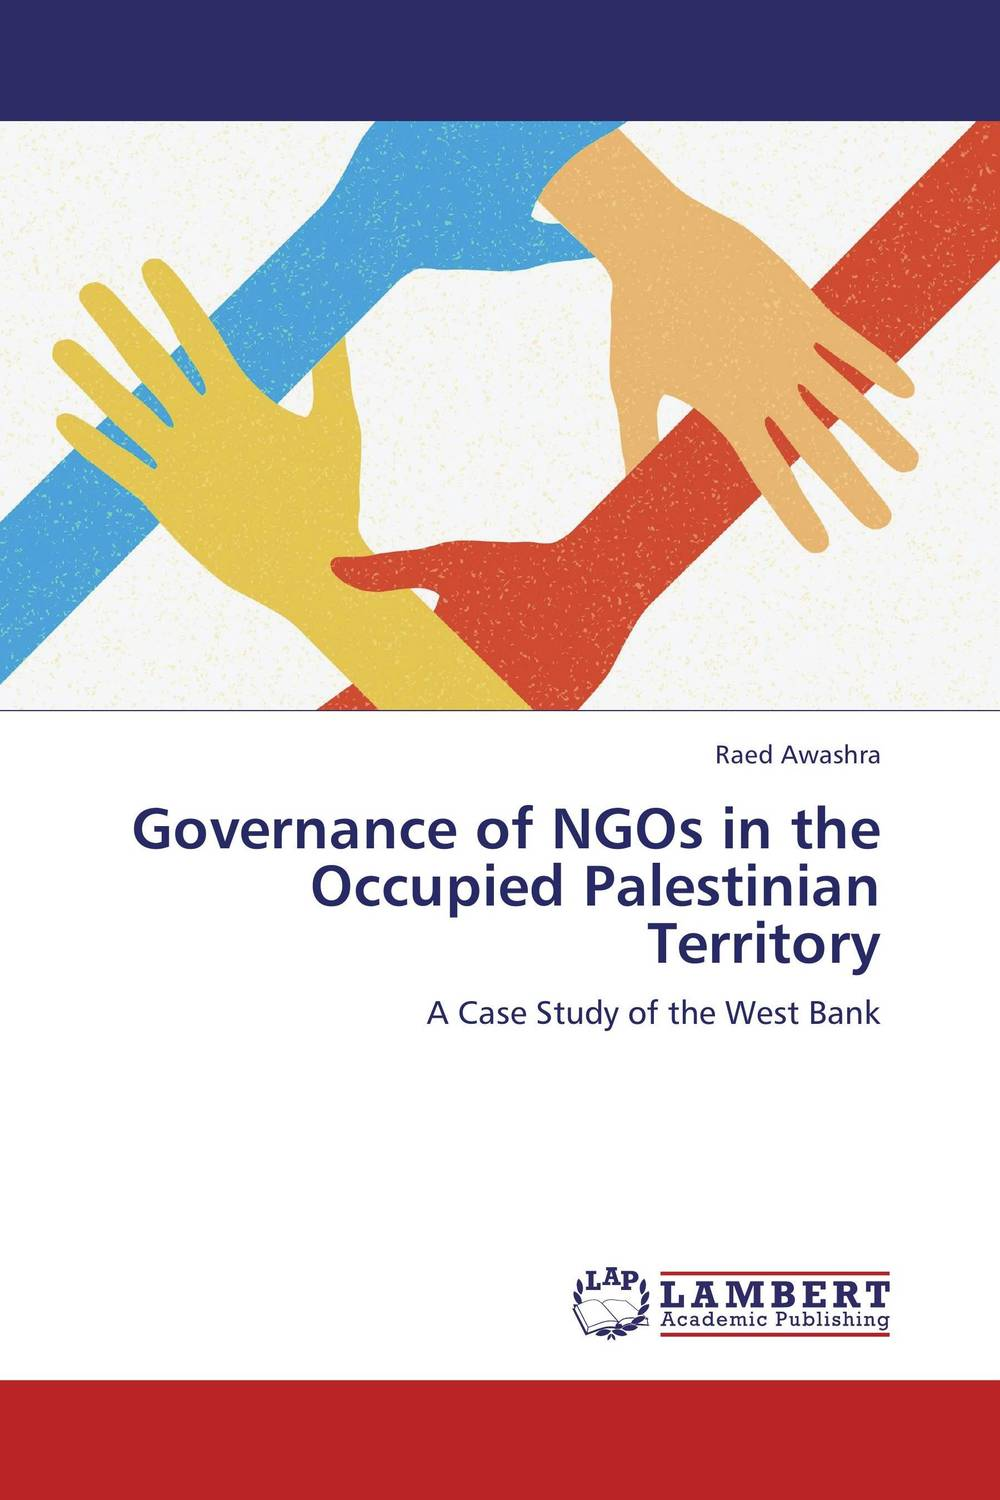 Governance of NGOs in the Occupied Palestinian Territory